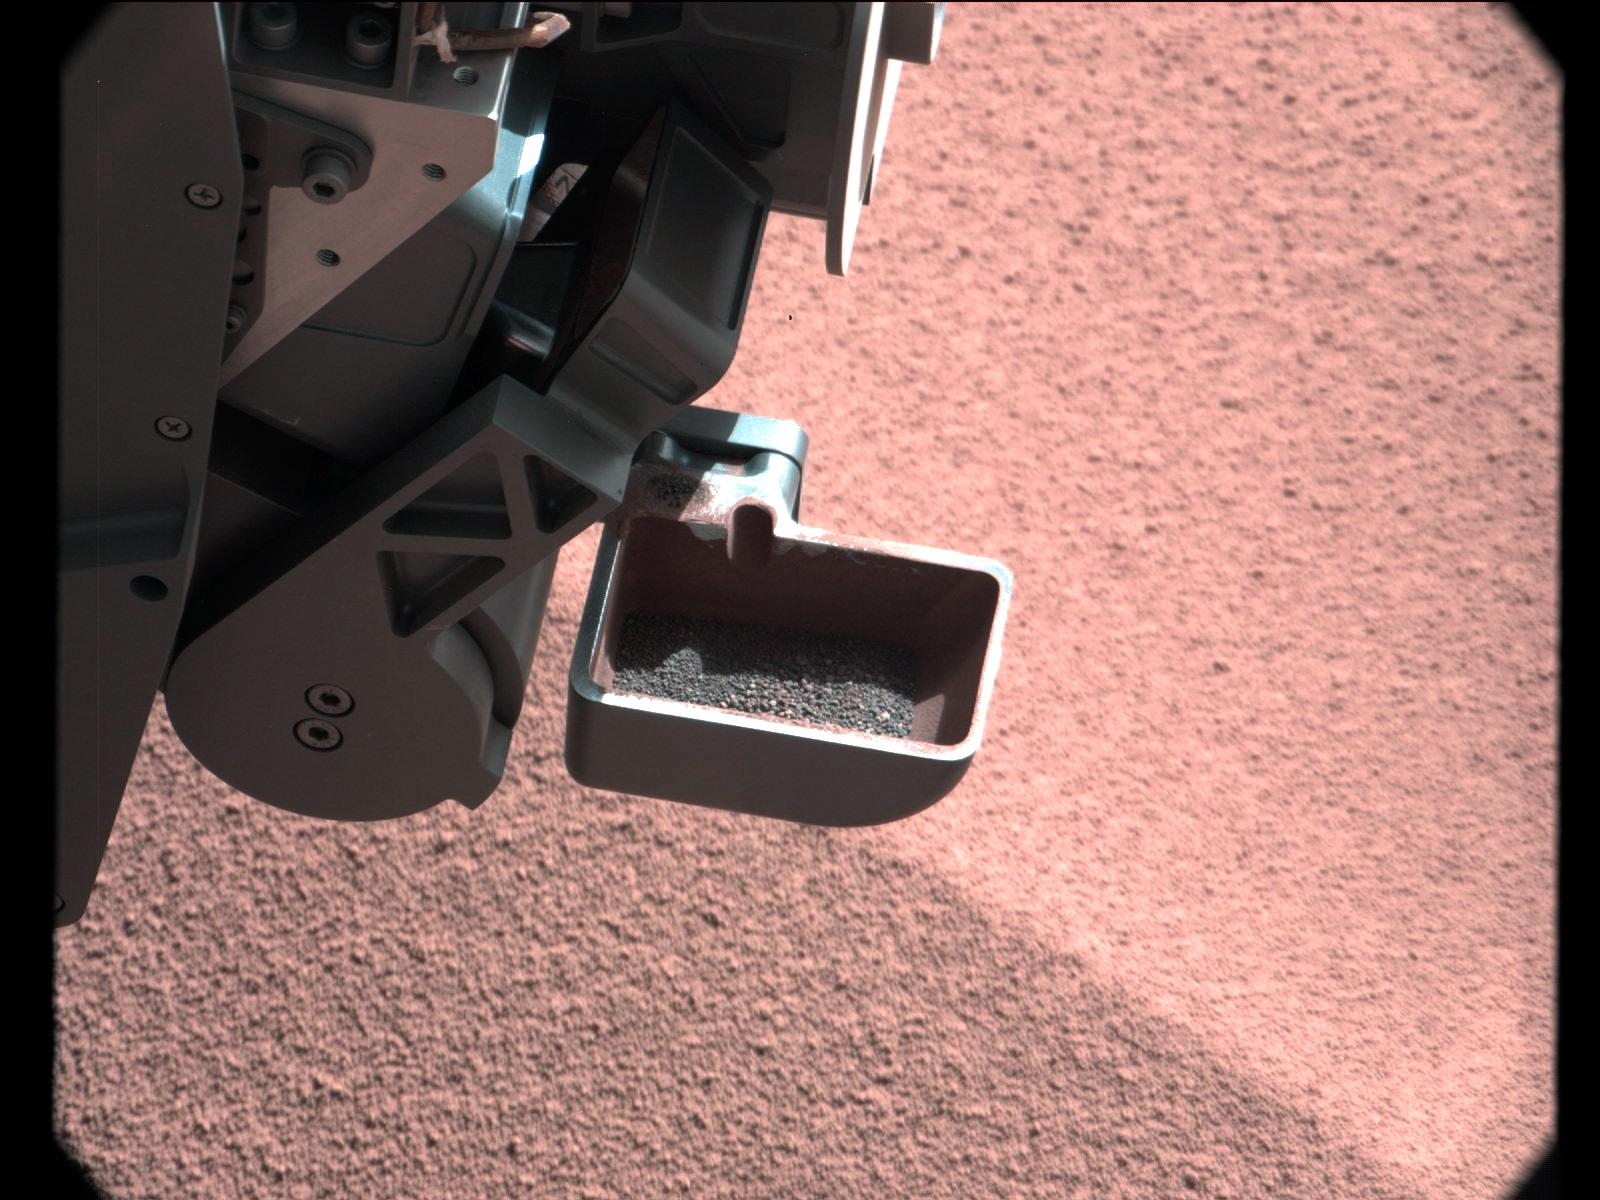 Mars Dirt Samples Too Large for Curiosity Rover